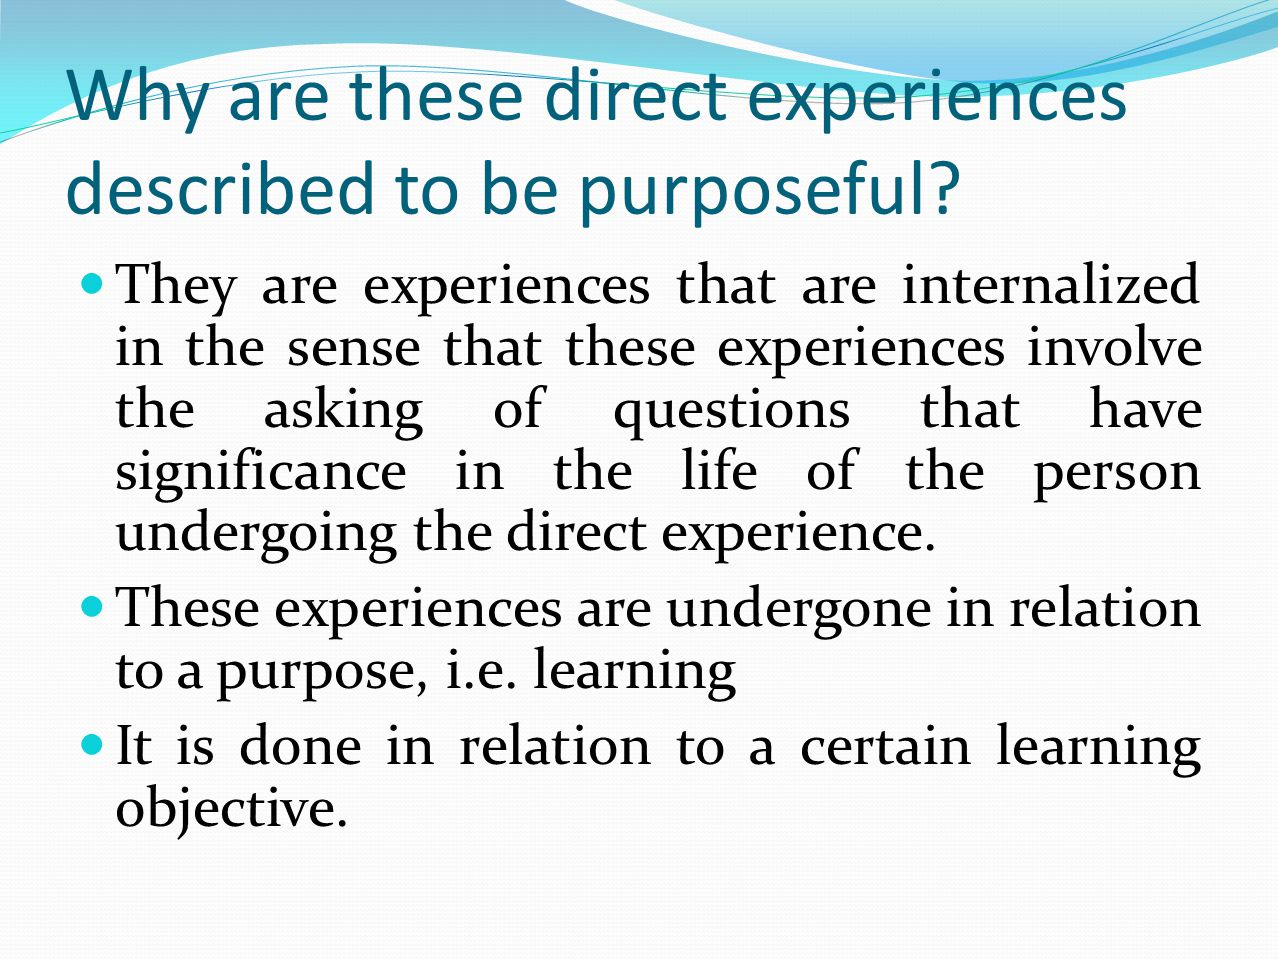 Why are these direct experiences described to be purposeful